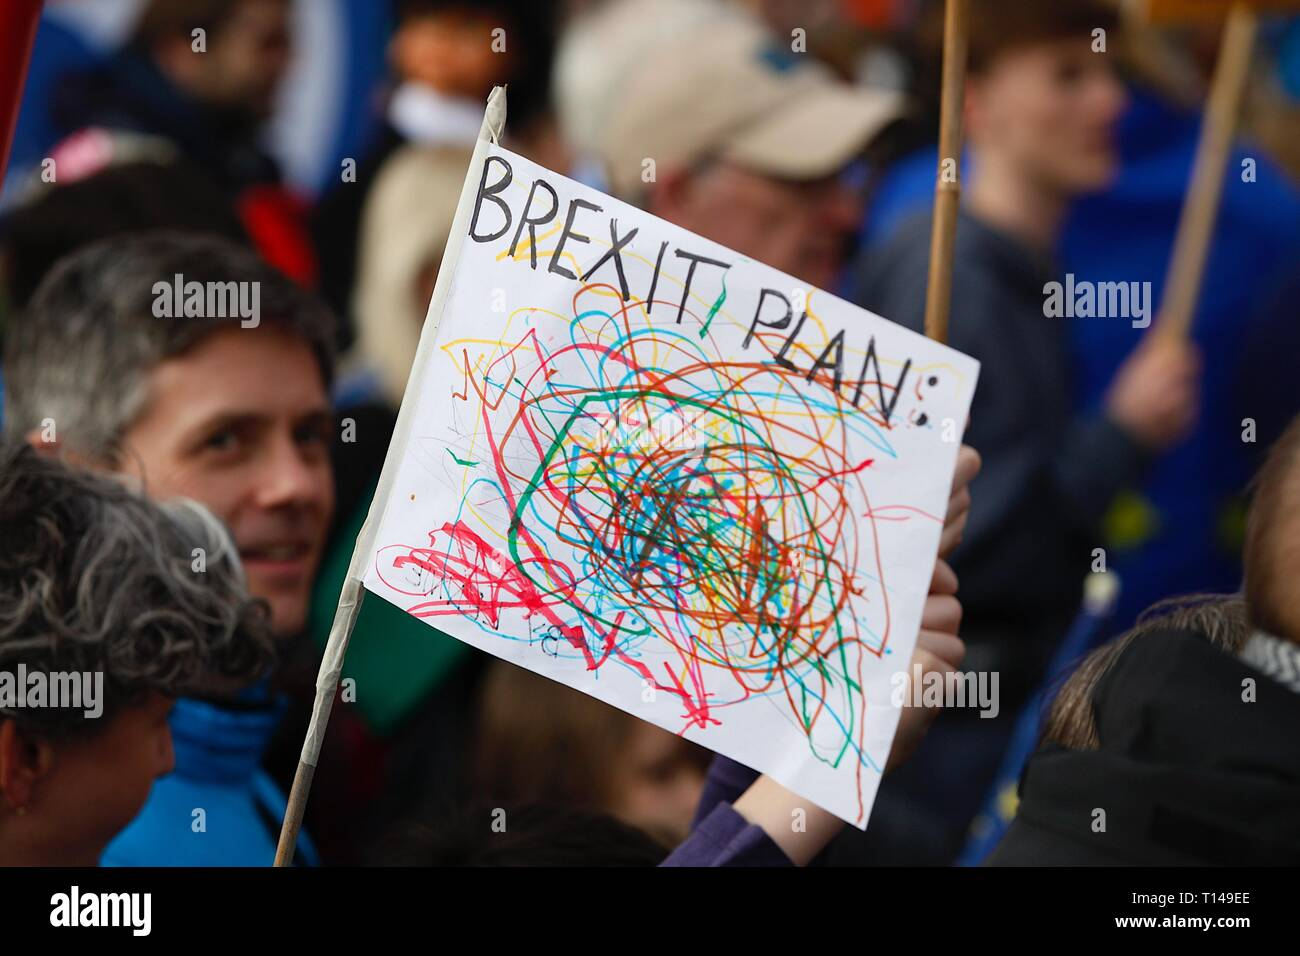 London, UK. 23 Mar, 2019. People's Vote March: Hundreds of thousands of pro-EU supporters attend a mass march to Westminster. People are expected to join the march from Park Lane to Parliament Square beginning at noon with speeches commencing at 2.45pm from all political party's. Brexit plan scribble sign. ©Paul Lawrenson 2019, Photo Credit: Paul Lawrenson/Alamy Live News Stock Photo